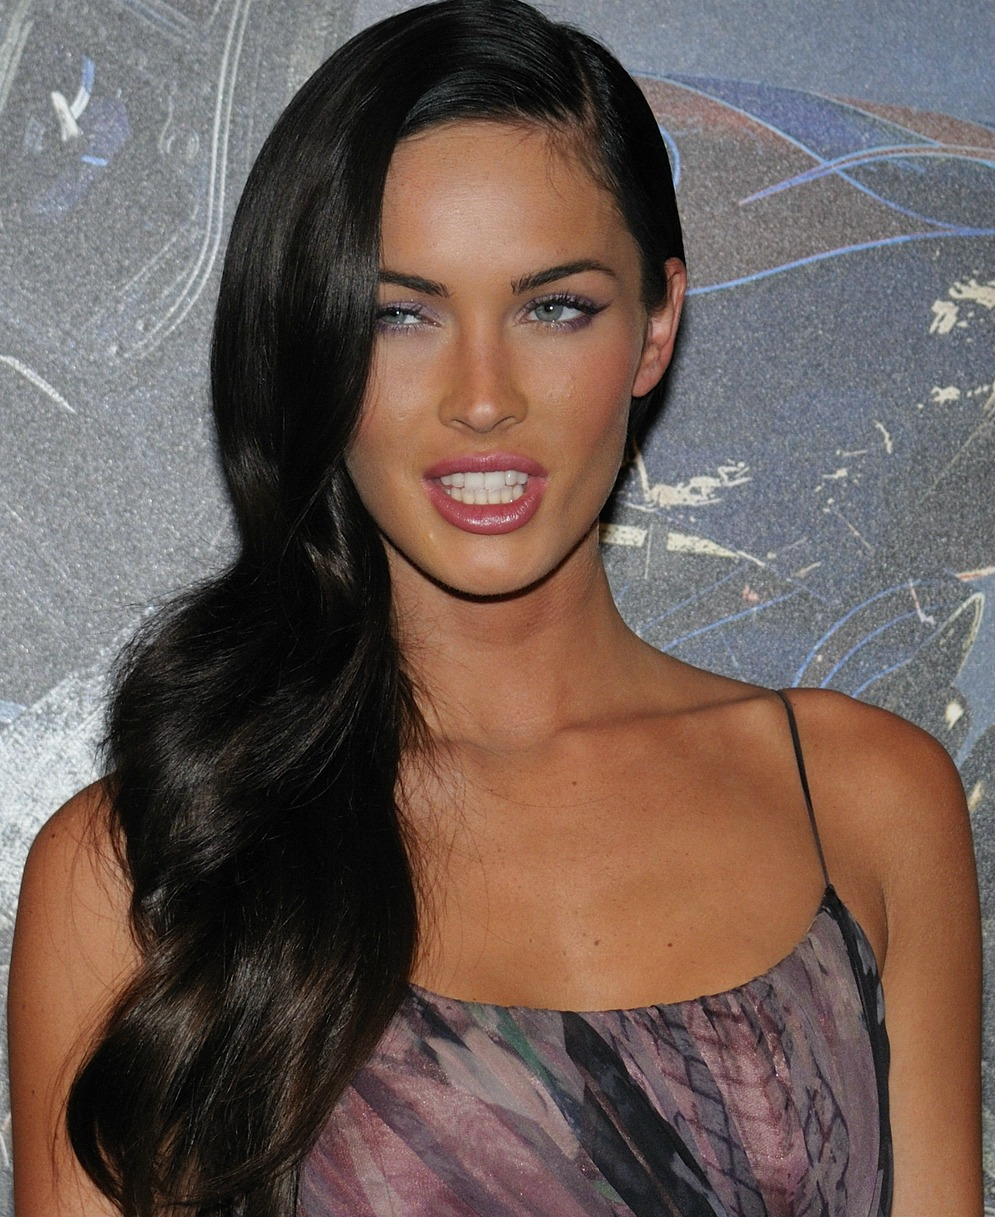 Megan Fox Measurements, Height, Weight, Bra Size, Age, Wiki, Affairs